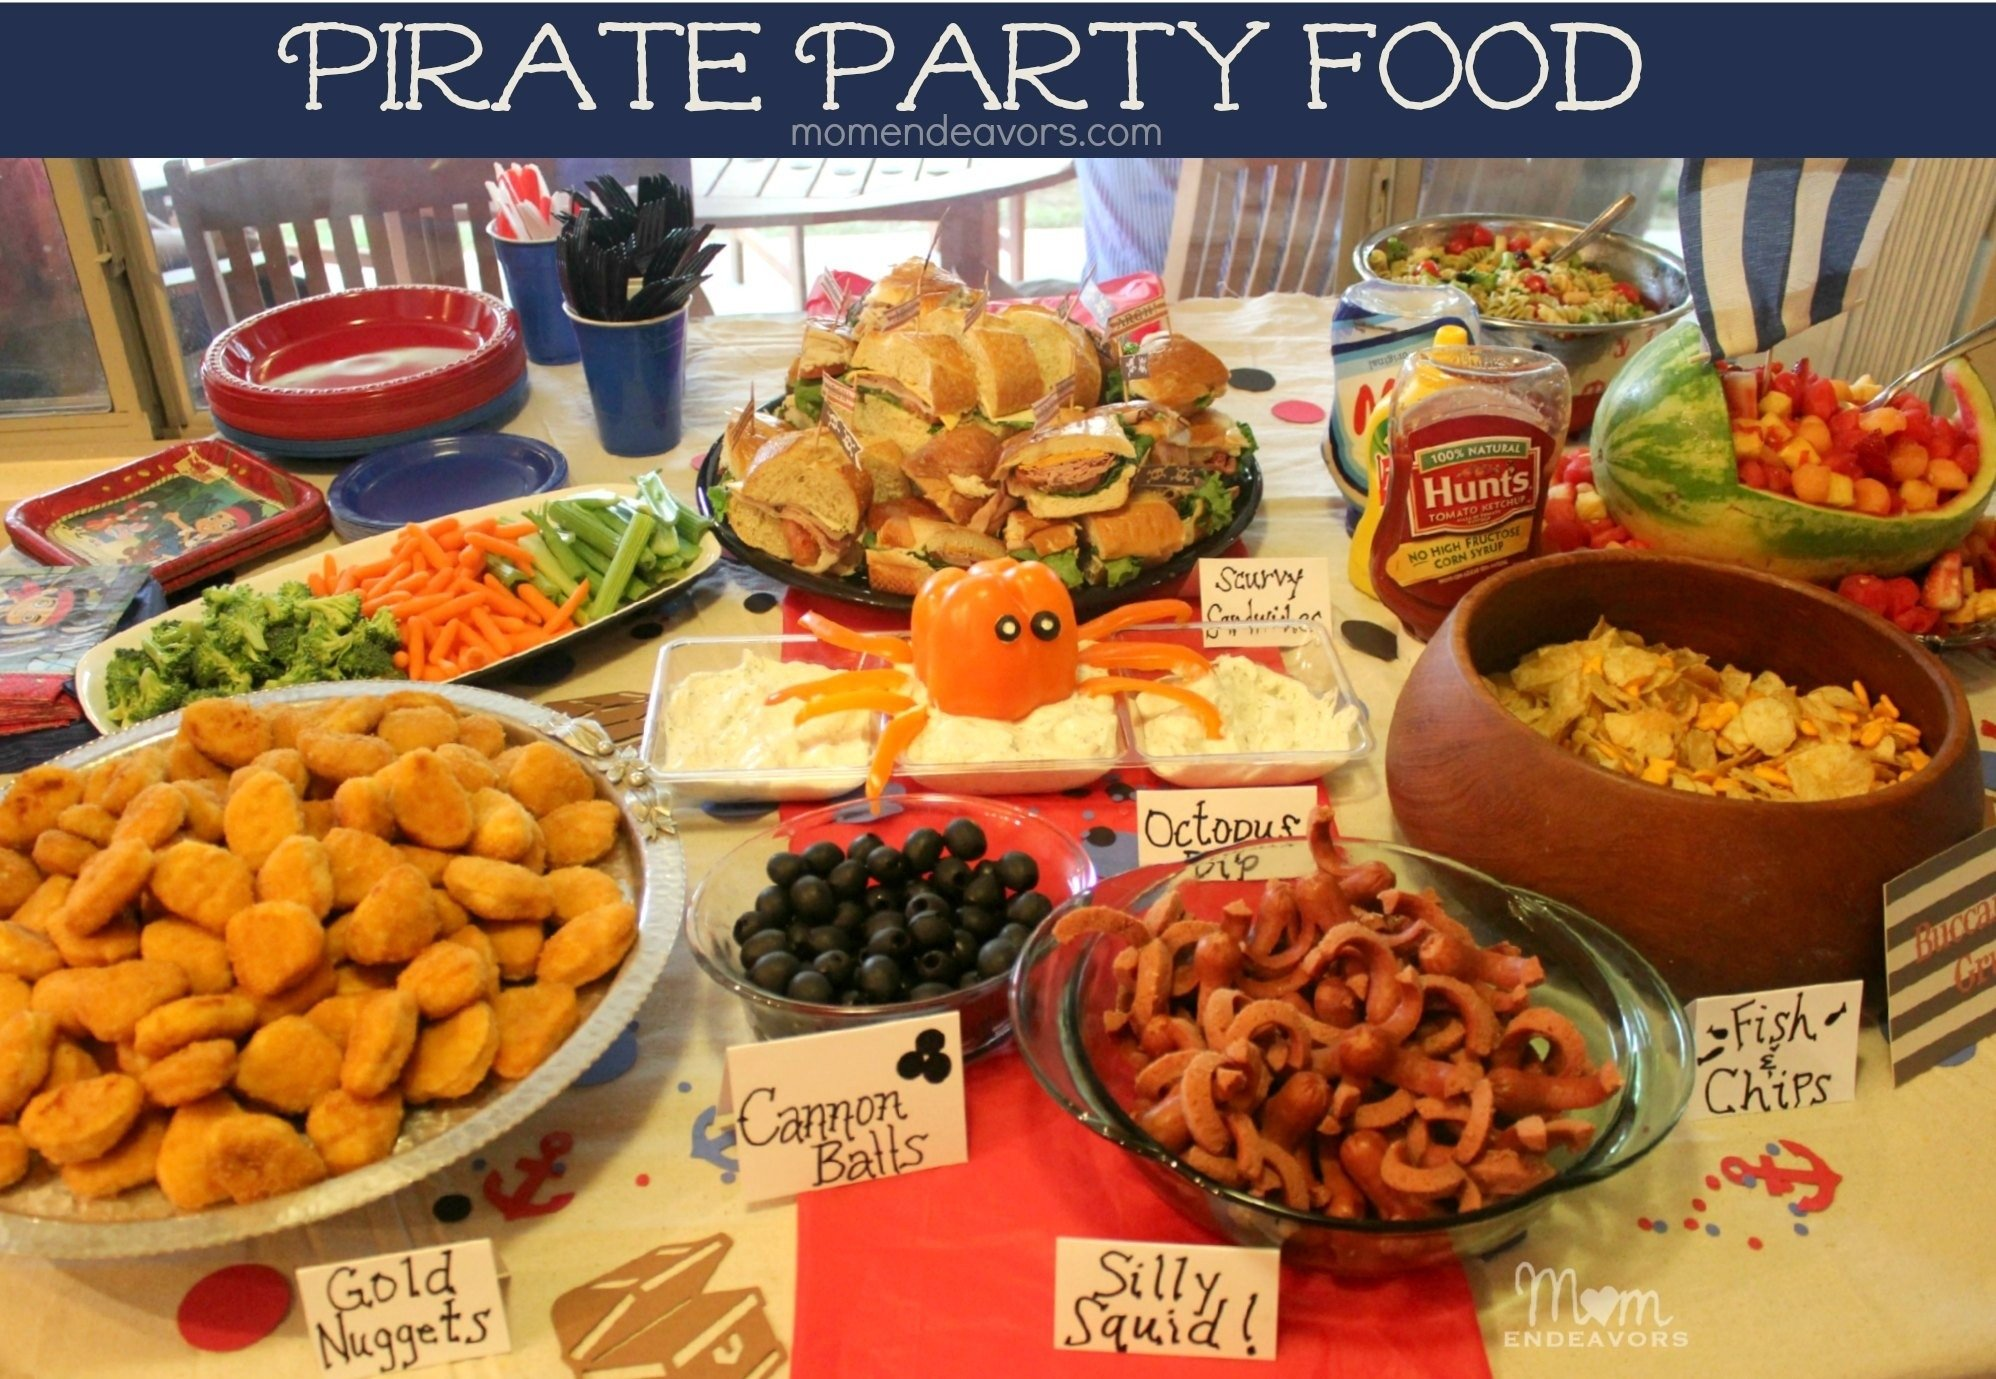 10 Famous Birthday Party Menu Ideas For Adults birthday party food ideas for adults nice decoration 2020